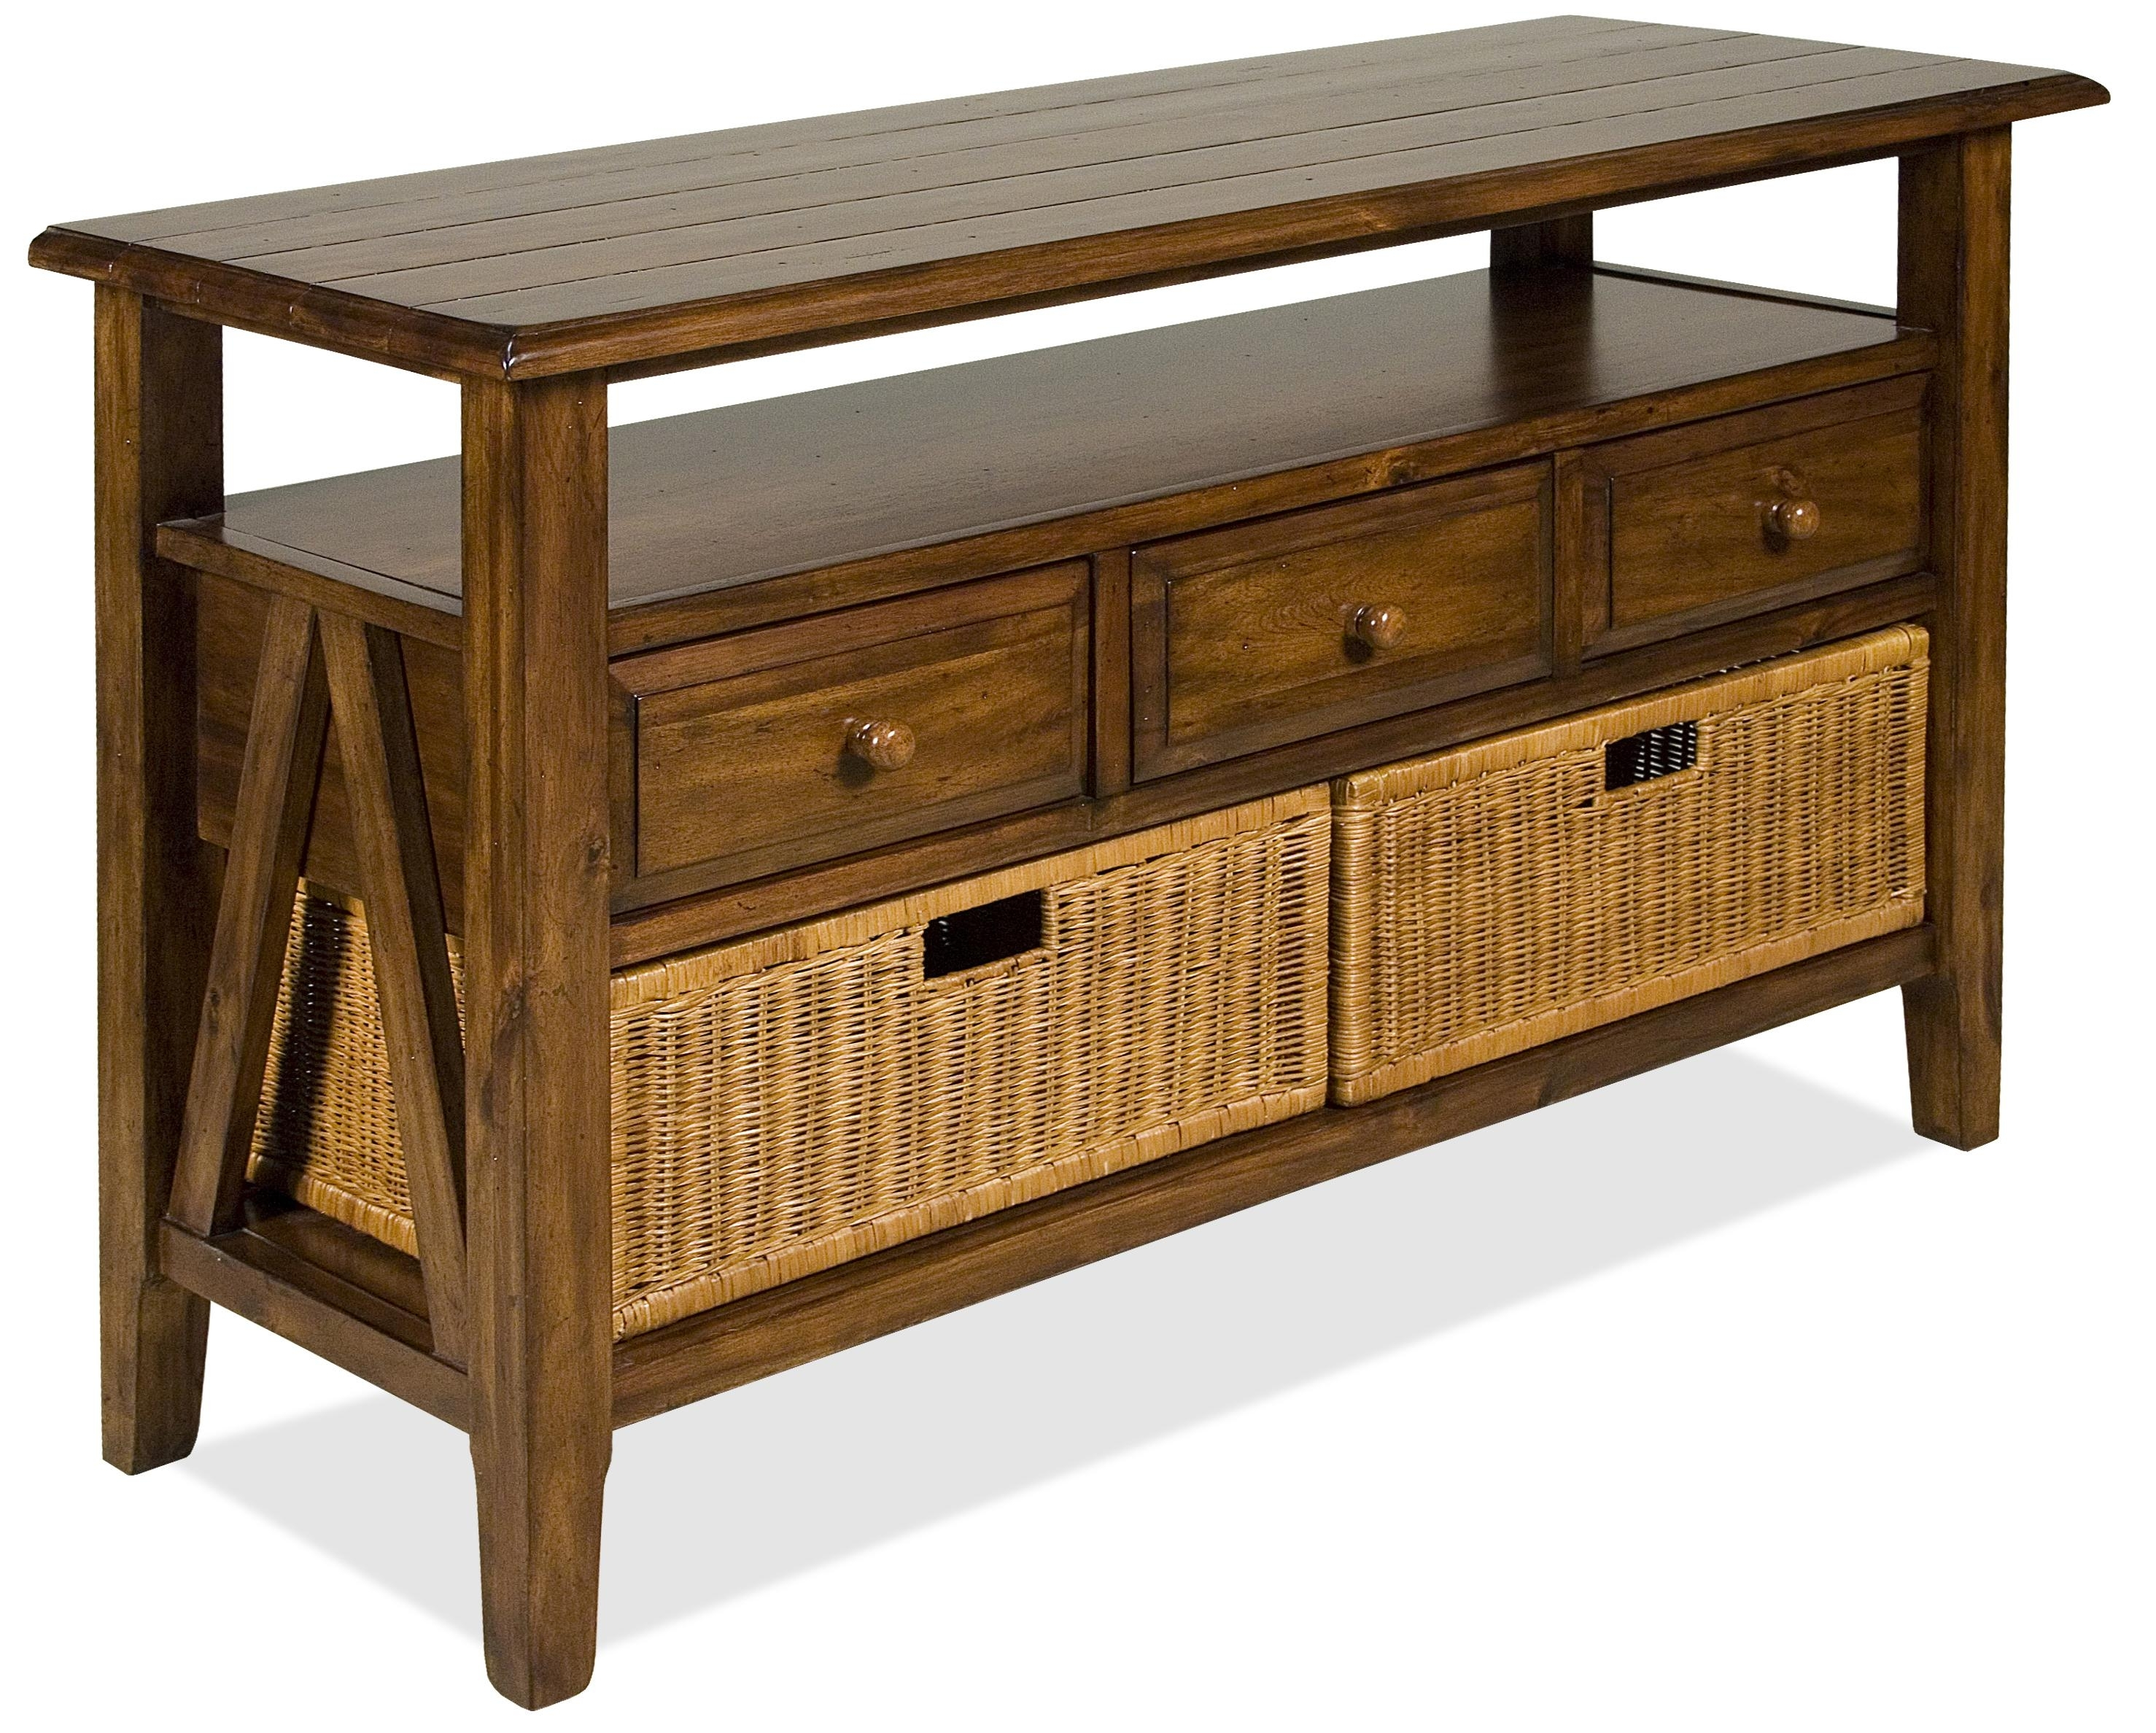 Riverside Furniture Claremont 3 Drawer Console Table With Storage with regard to Calhoun Sideboards (Image 18 of 30)